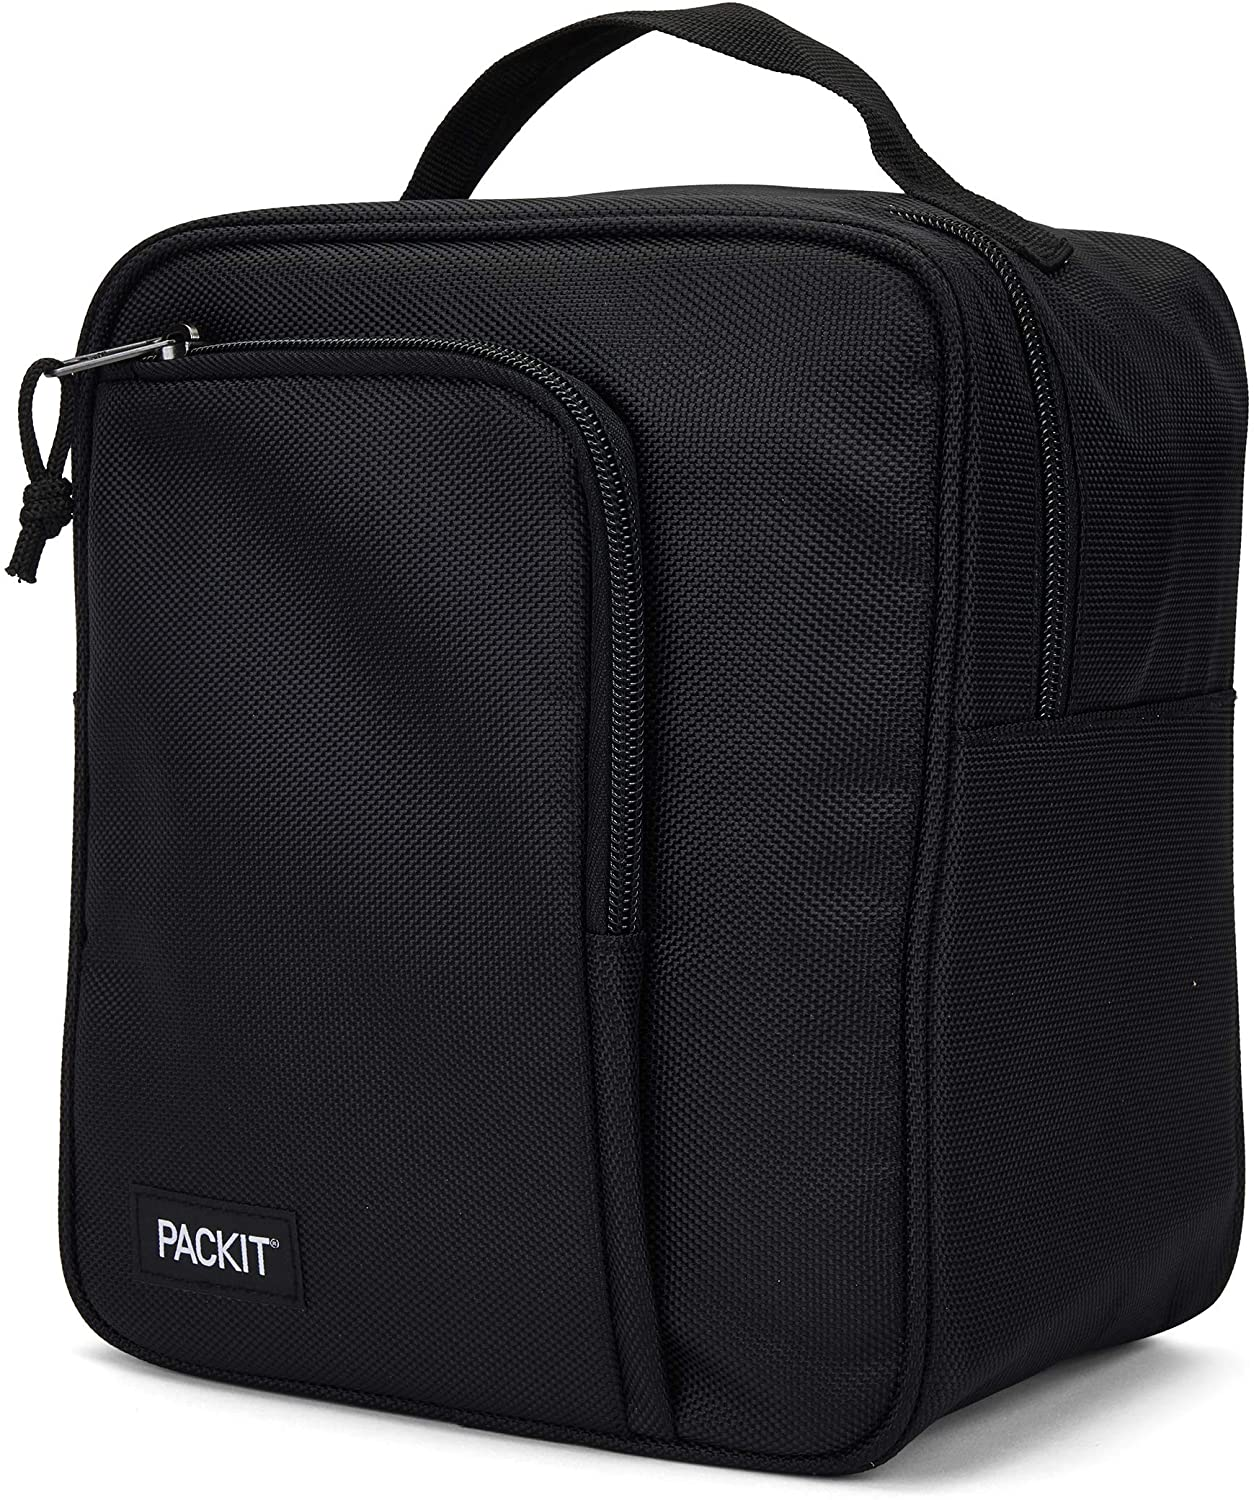 PackIt Freezable Commuter Large Cooler Lunch Box, Black